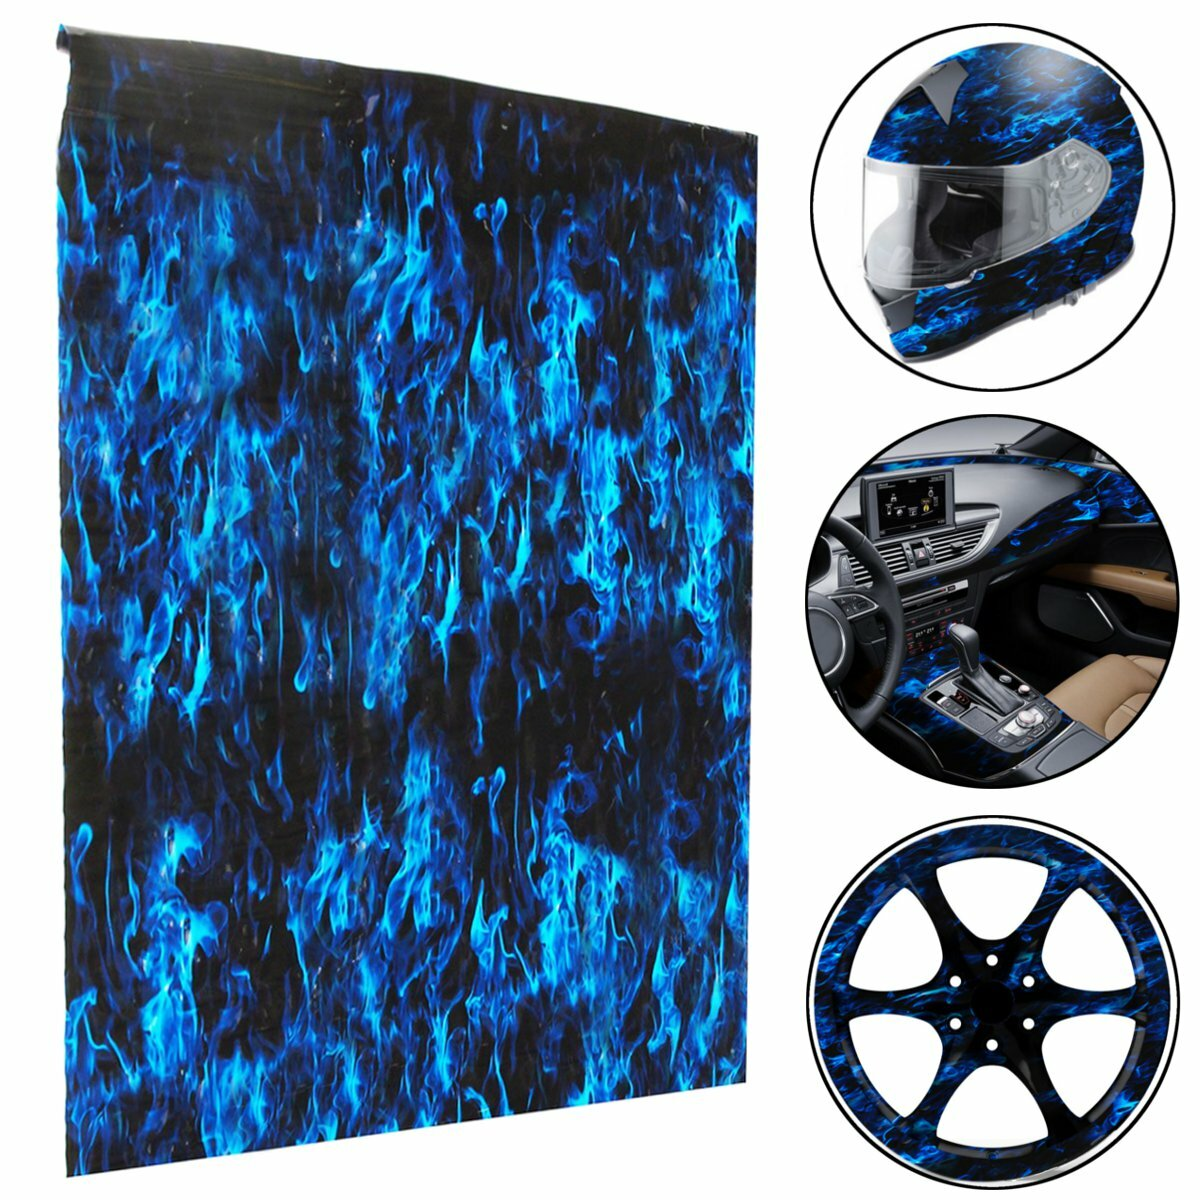 PVA Hydrographic Film Water Transfer Printing Film Hydro Dip Blue Fire Style Decorations